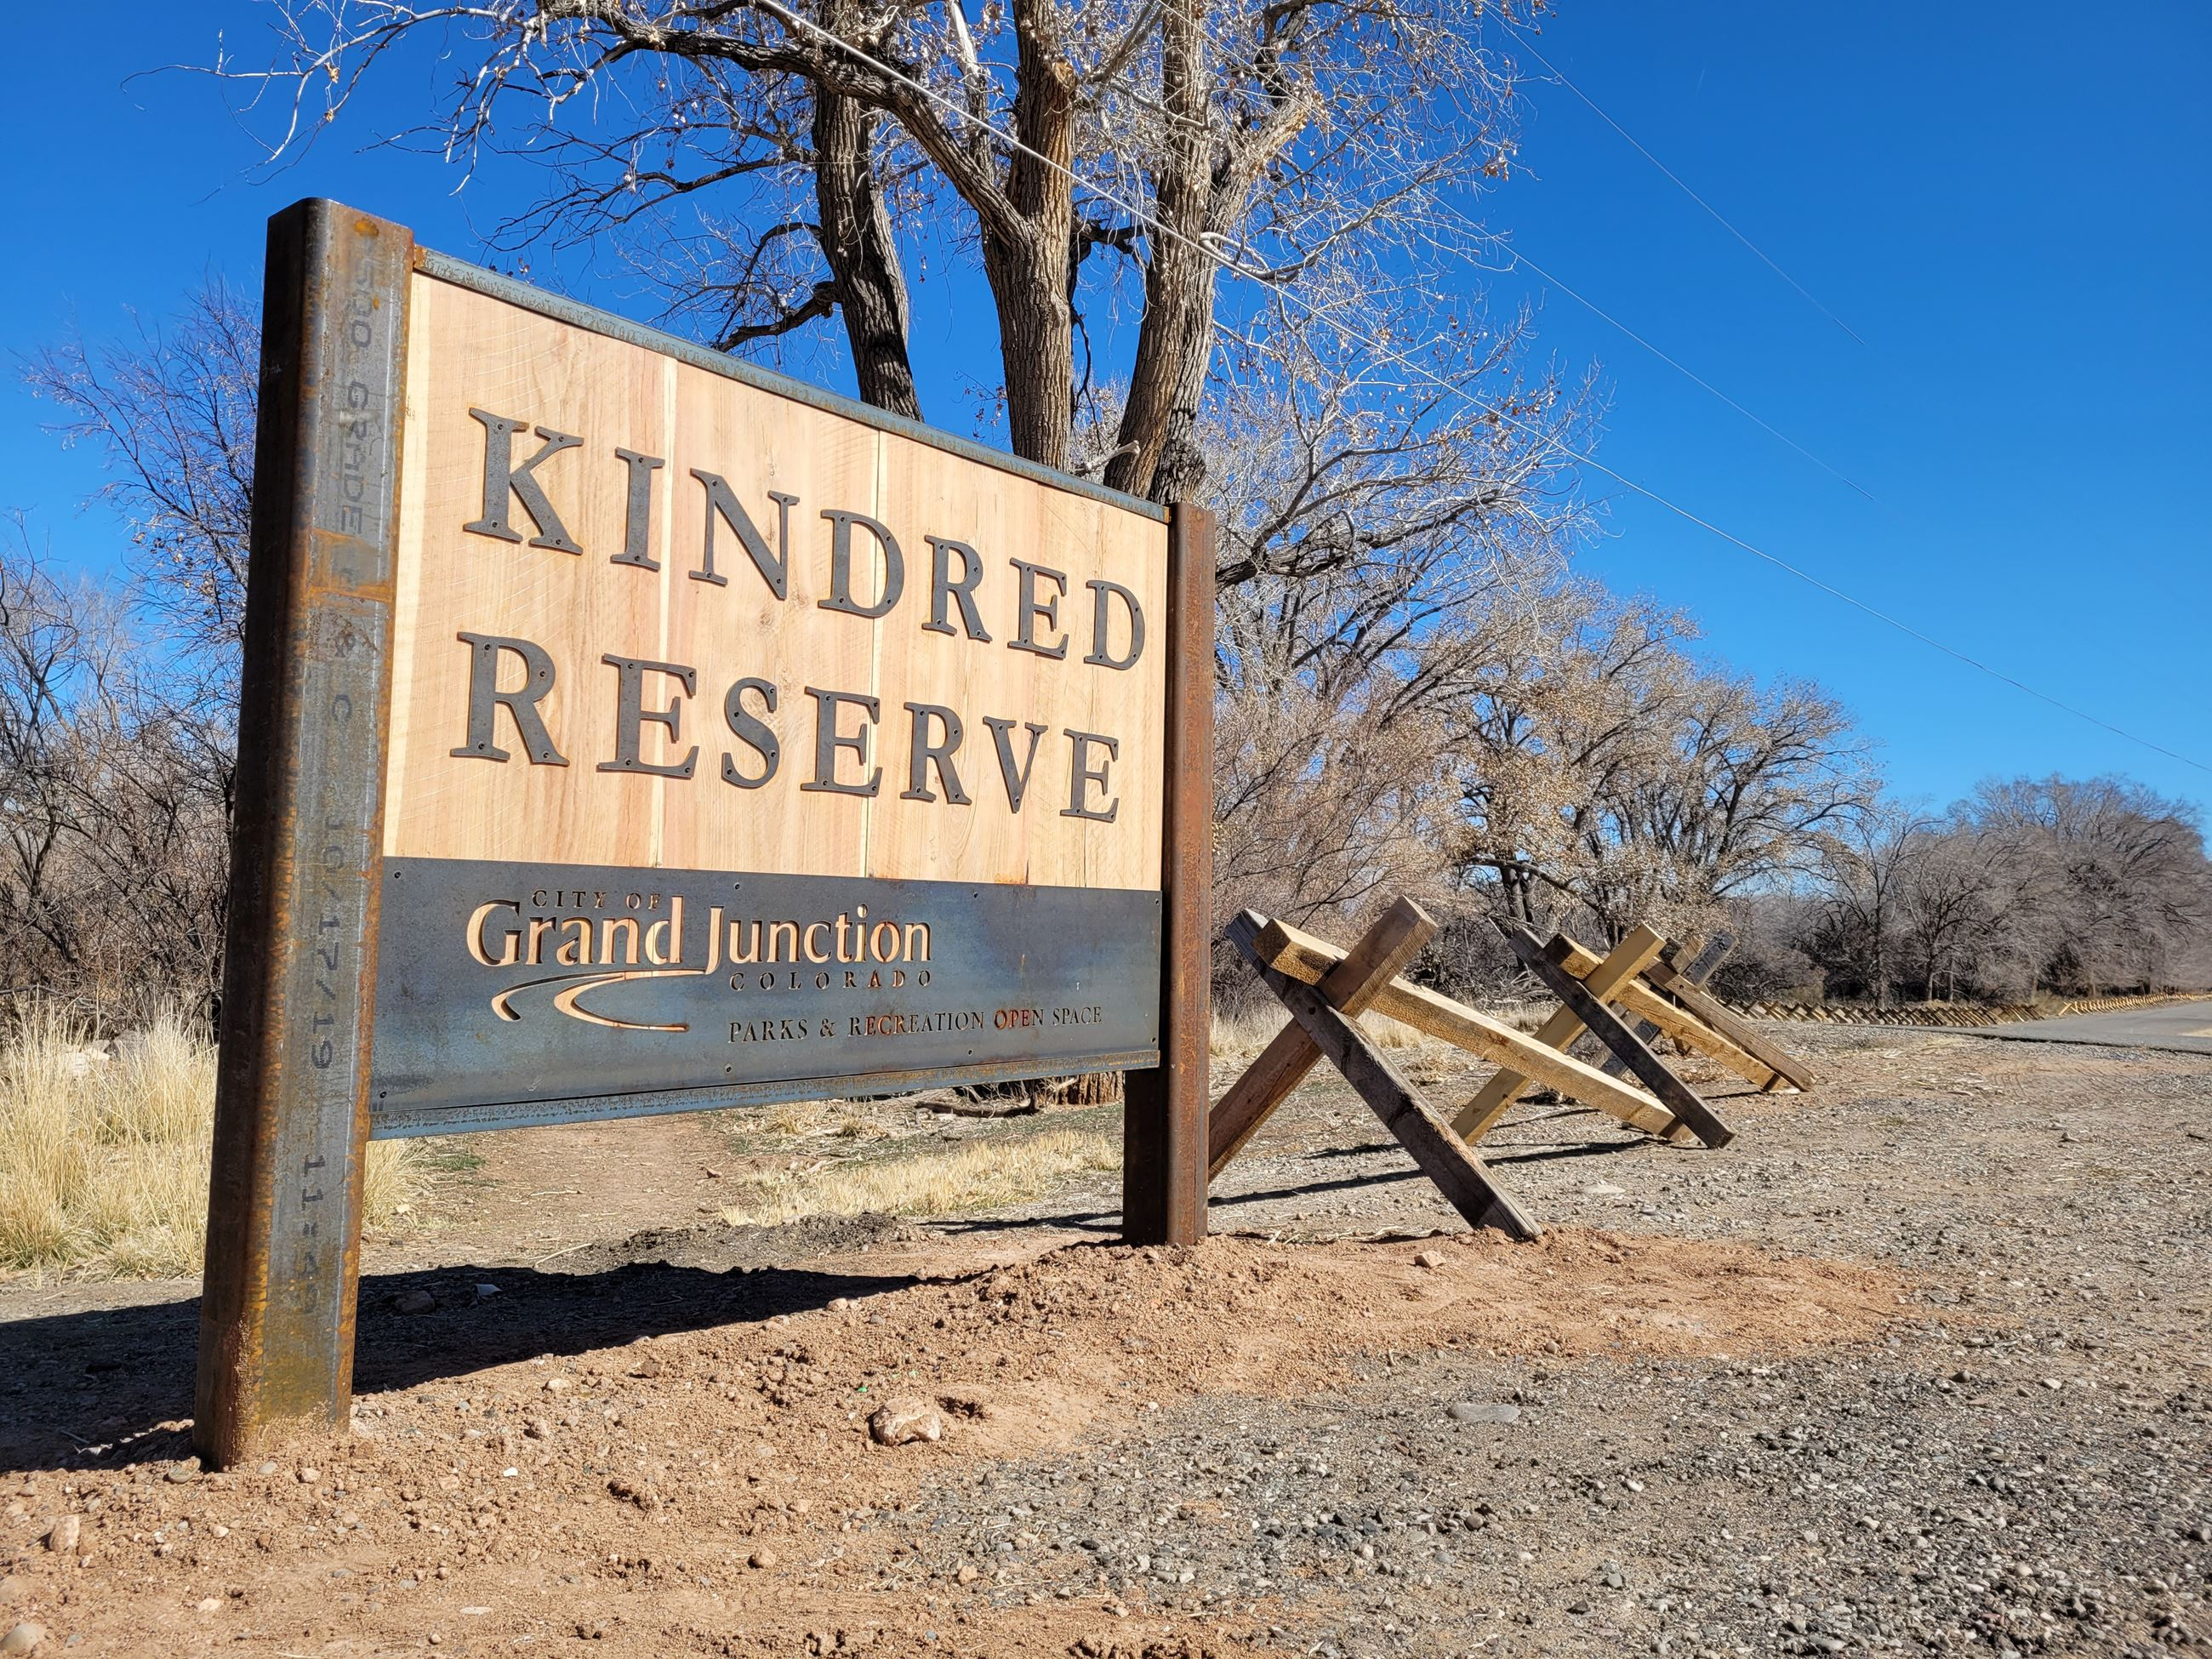 Kindred Reserve Open Space (23)